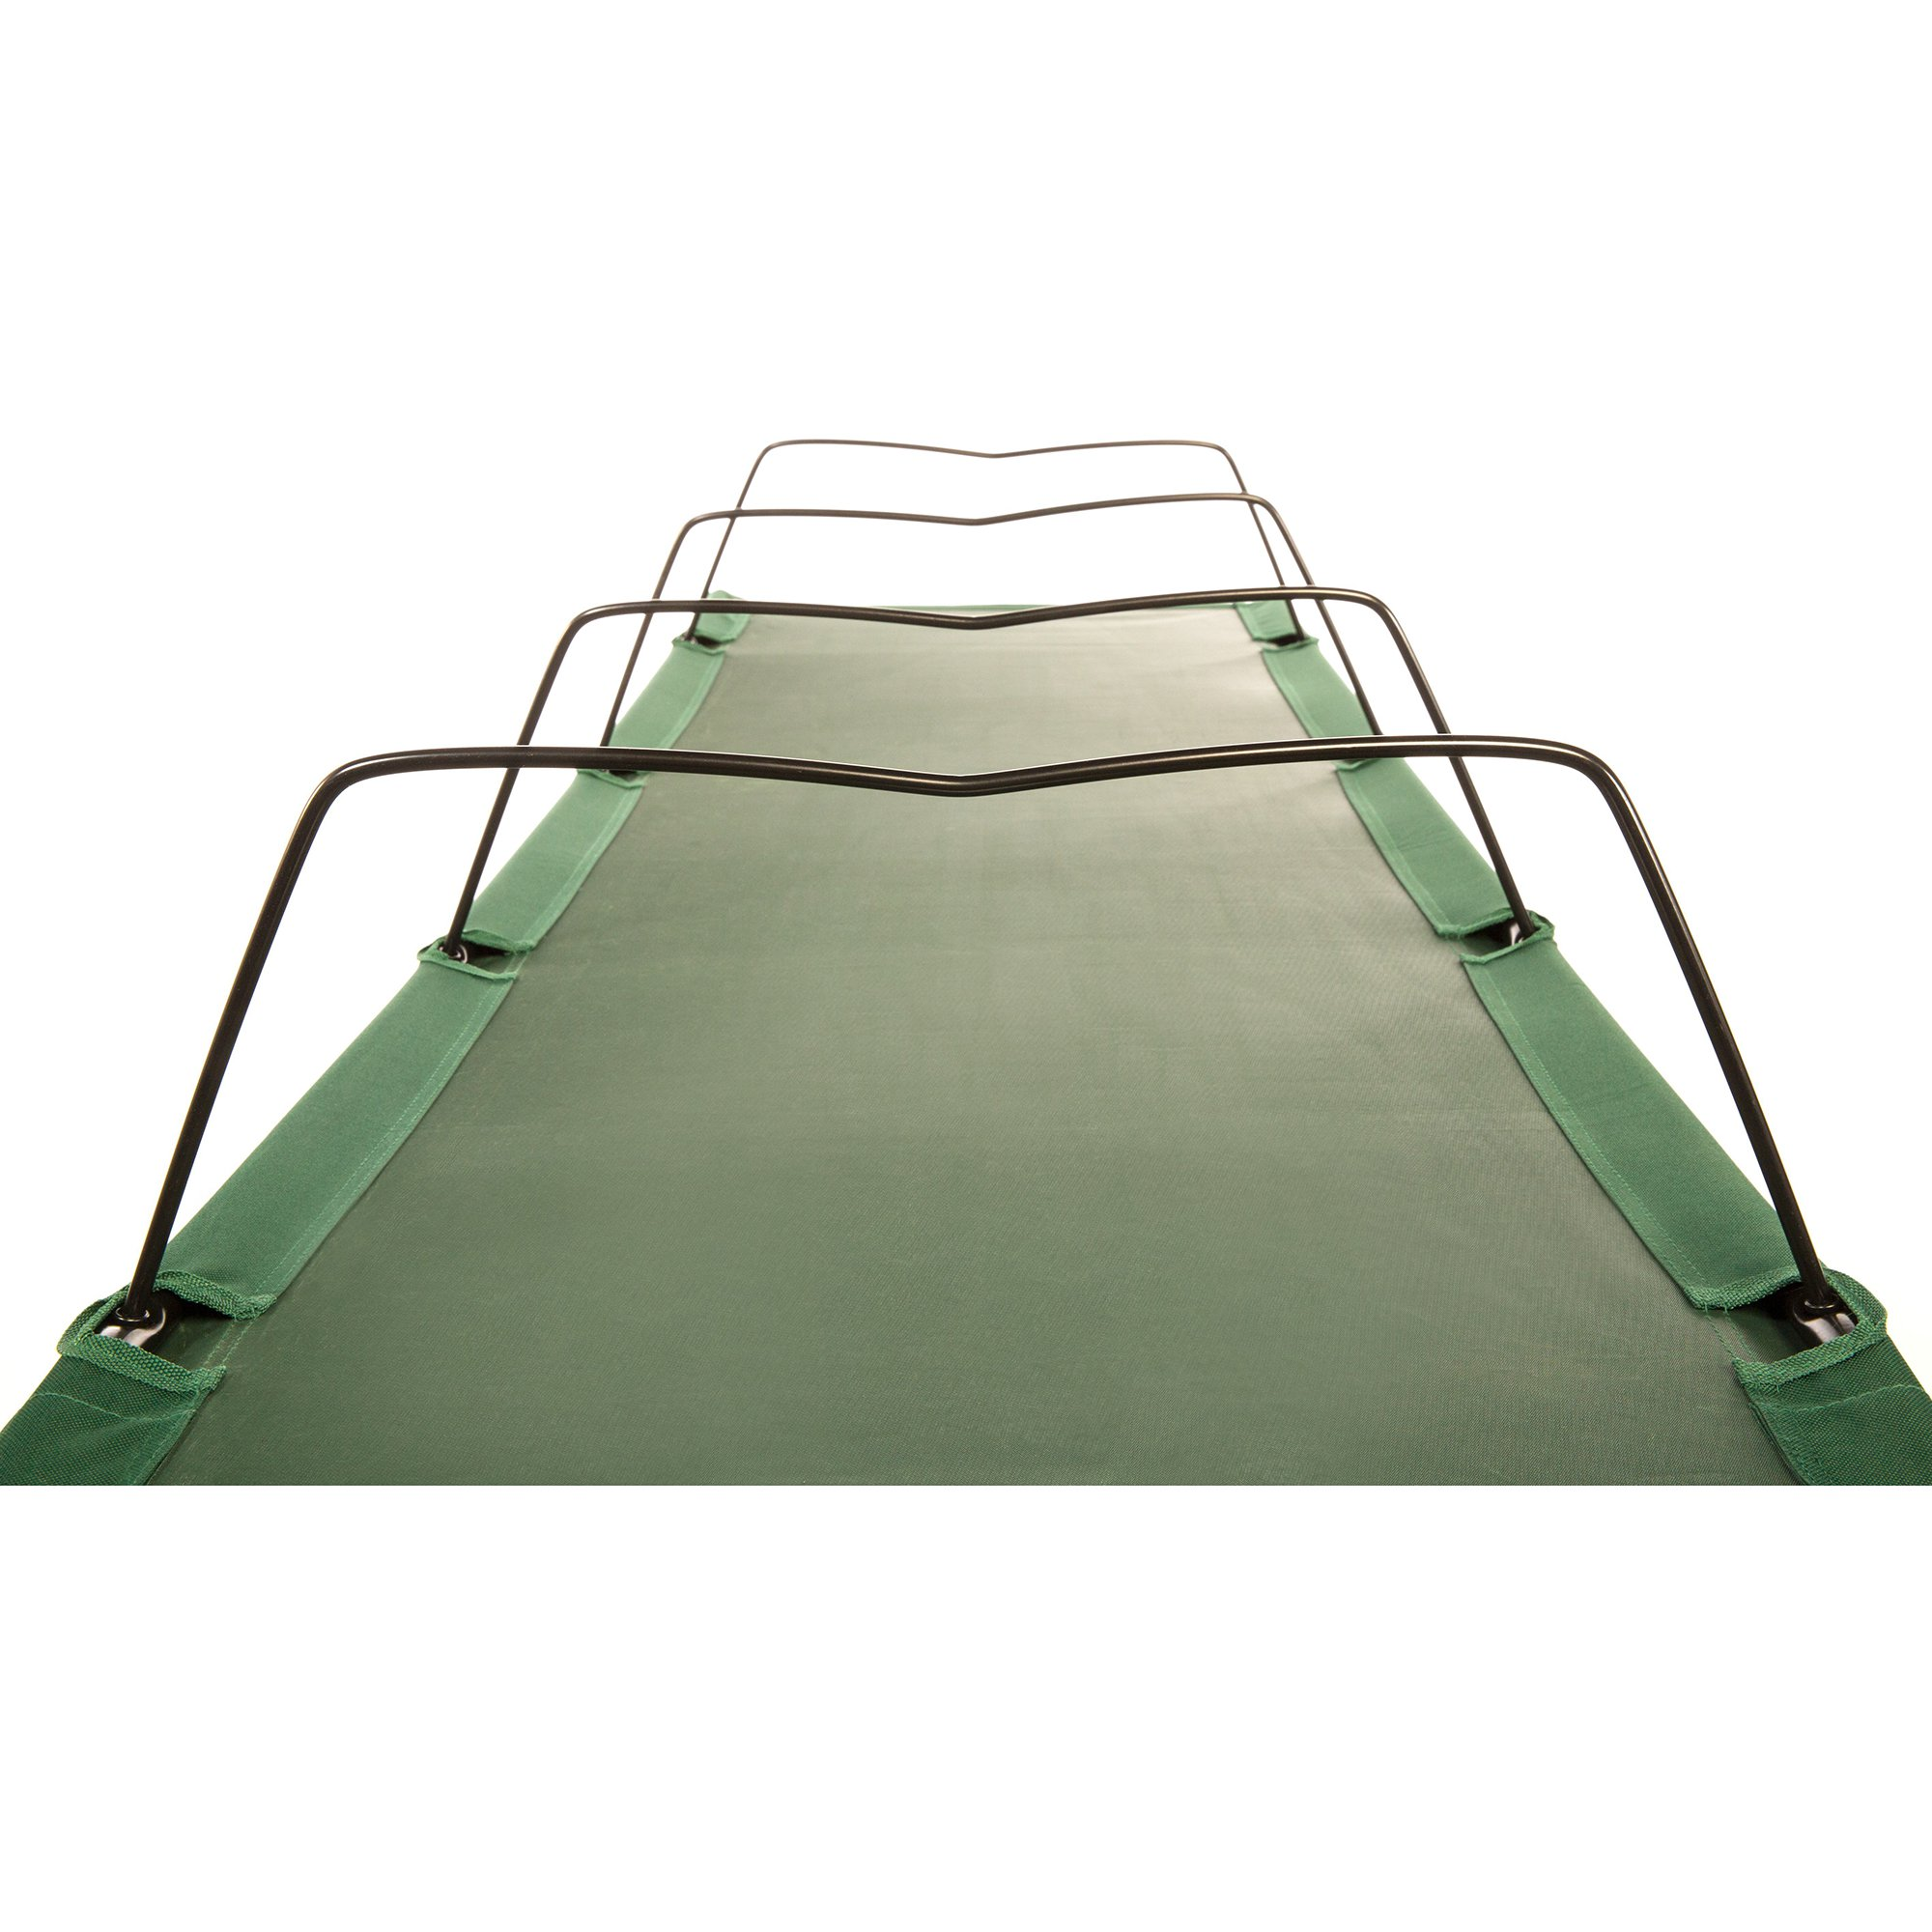 Kamp Rite Indoor or Outdoor Compact Light Collapsible Tent Camping Economy Cot - image 1 of 5